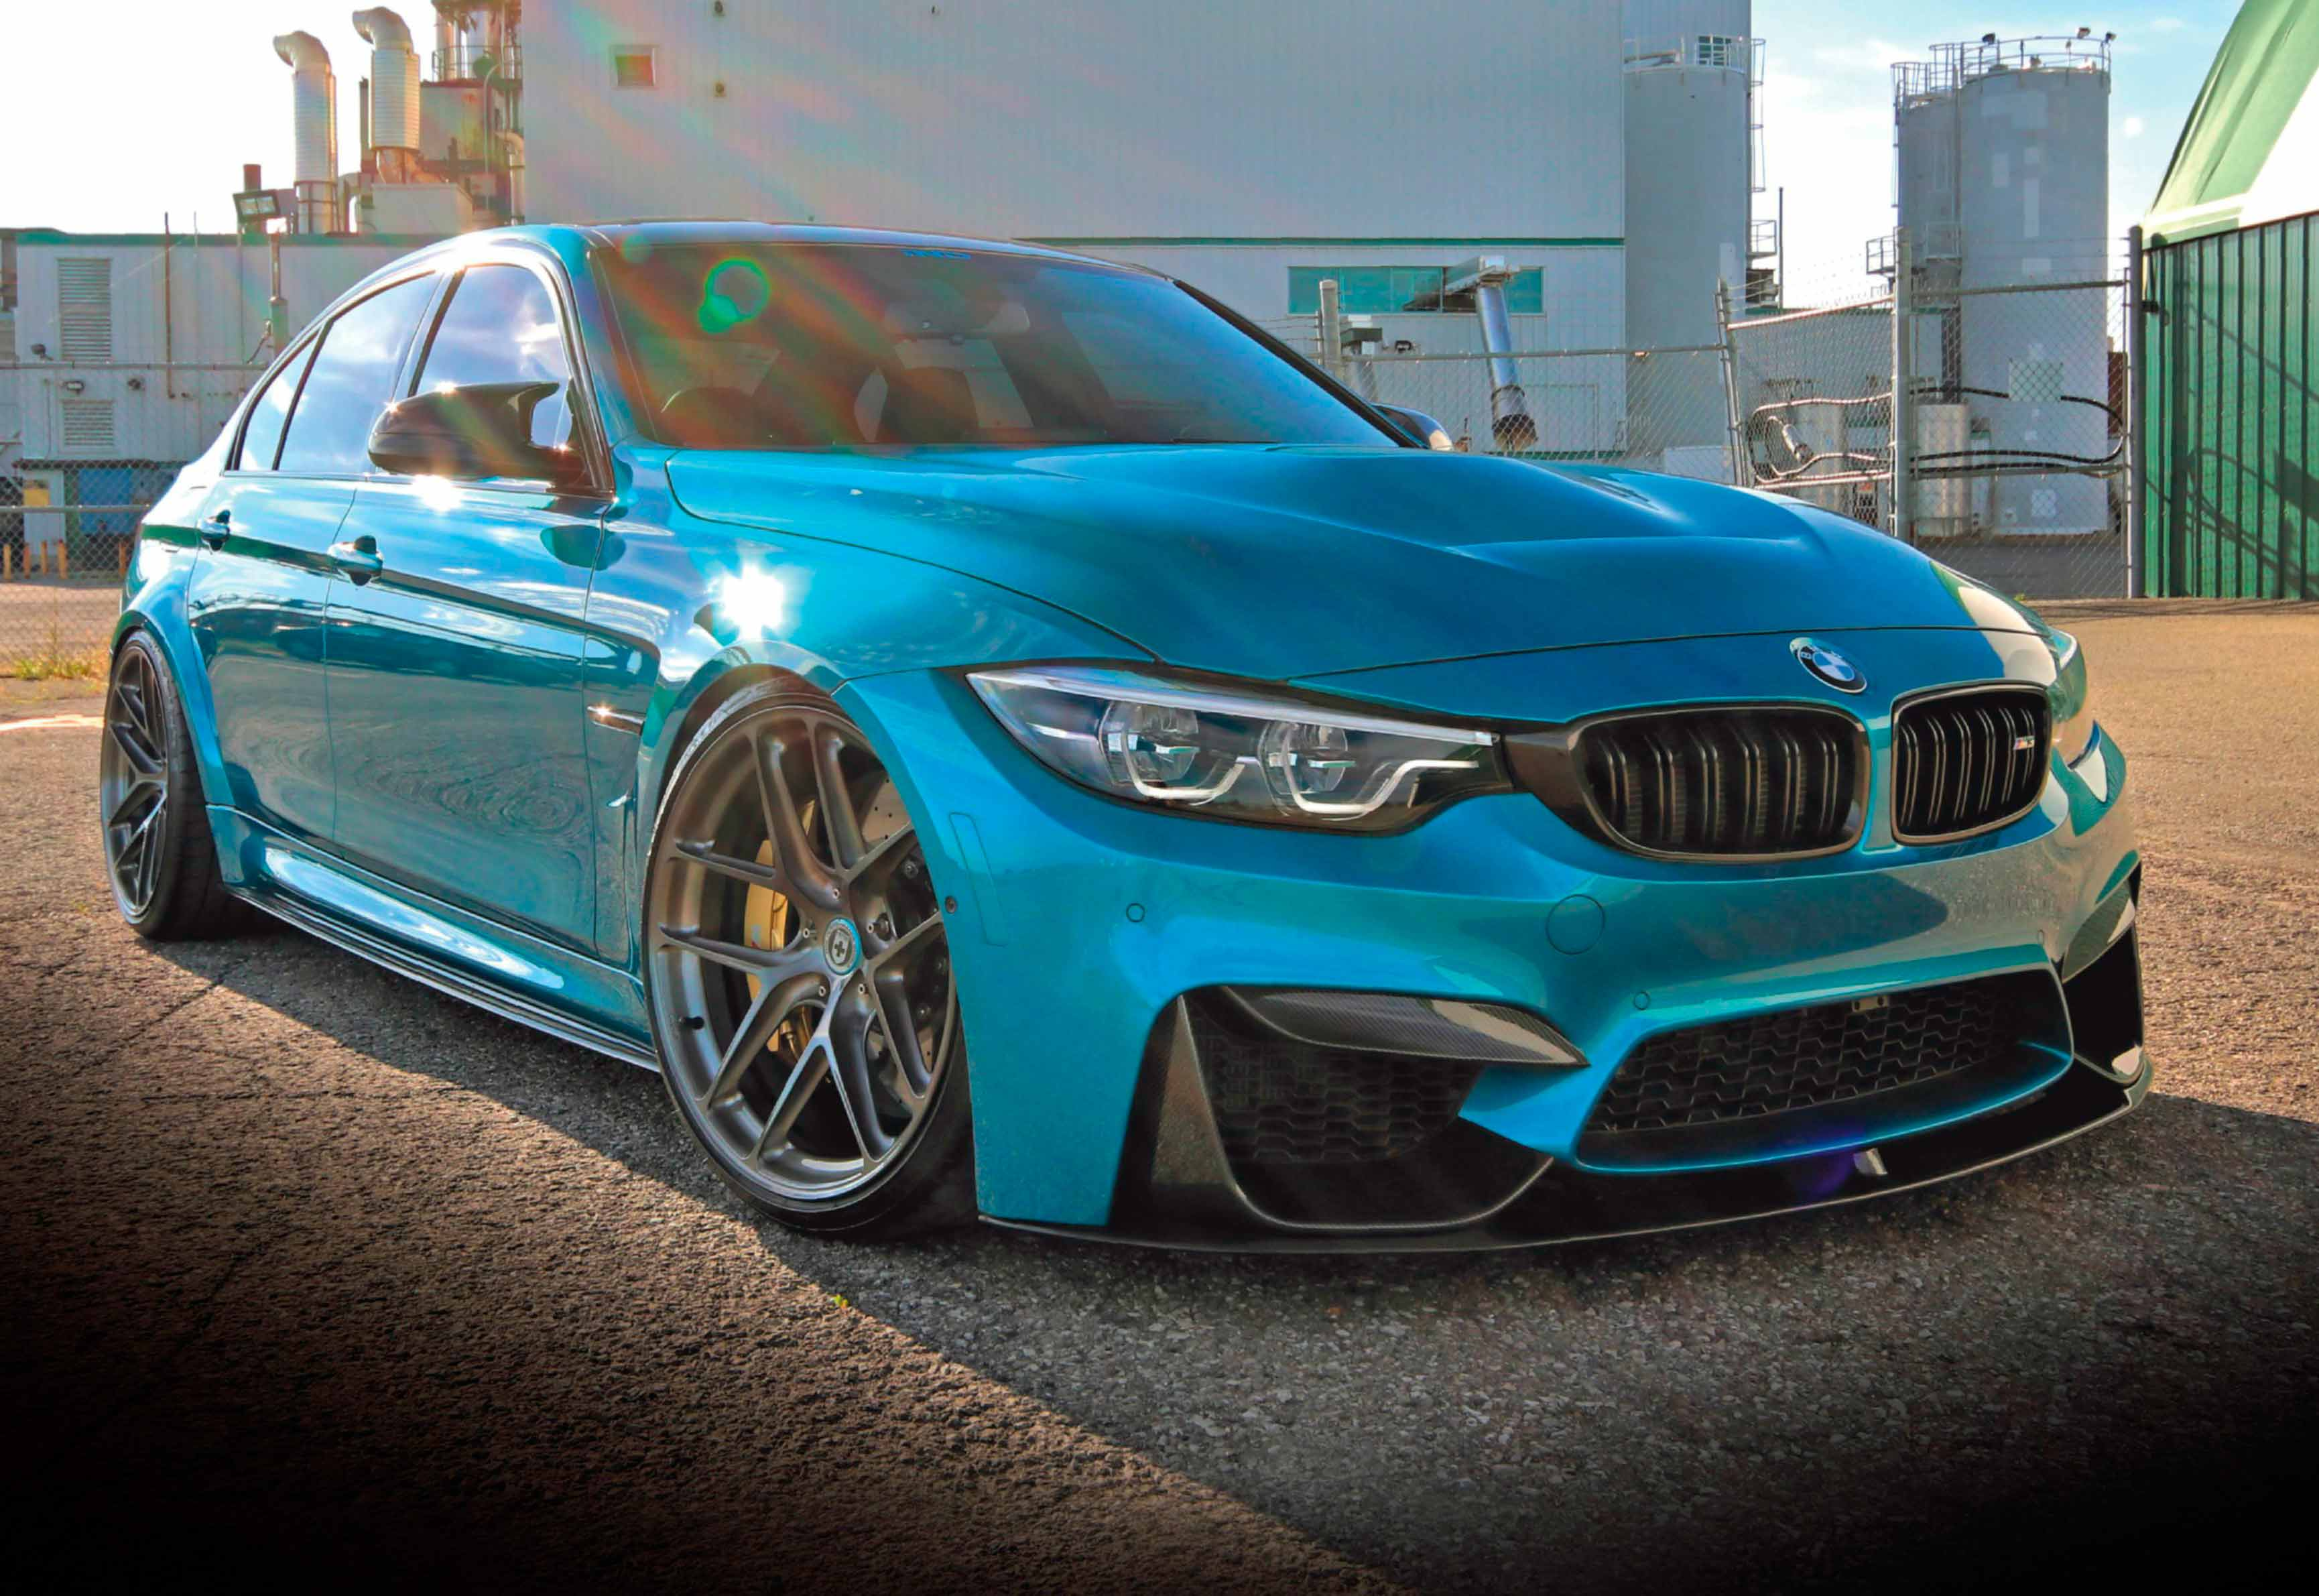 styled and tuned 500bhp bmw m3 f80 drive my blogs drivestyled and tuned 500bhp bmw m3 f80